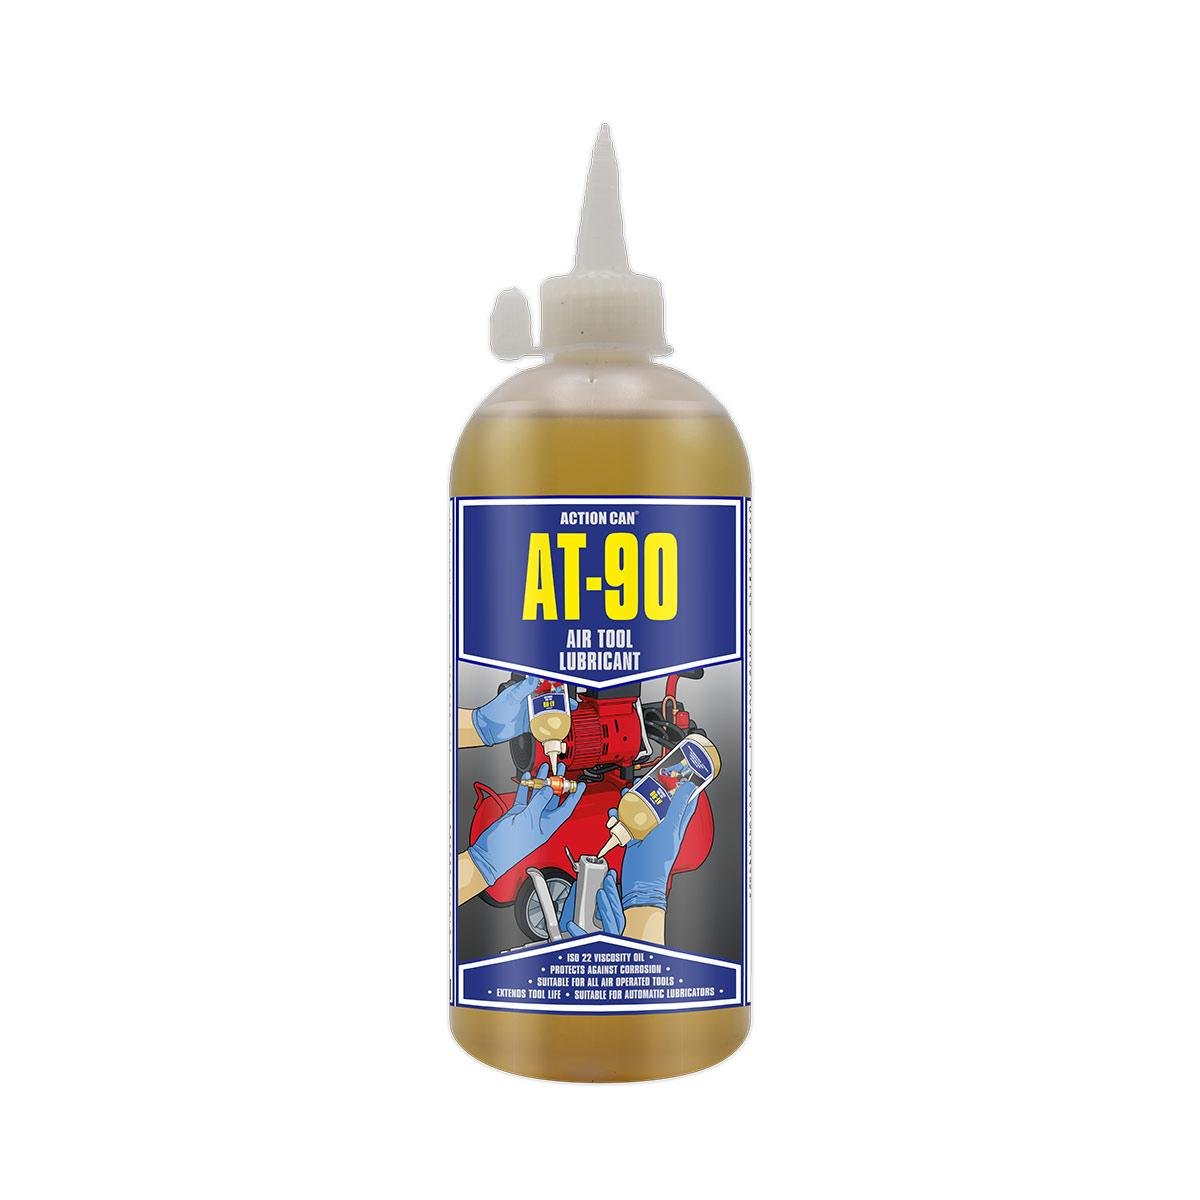 AT-90 Airtool Lubricant 500ML Bottle